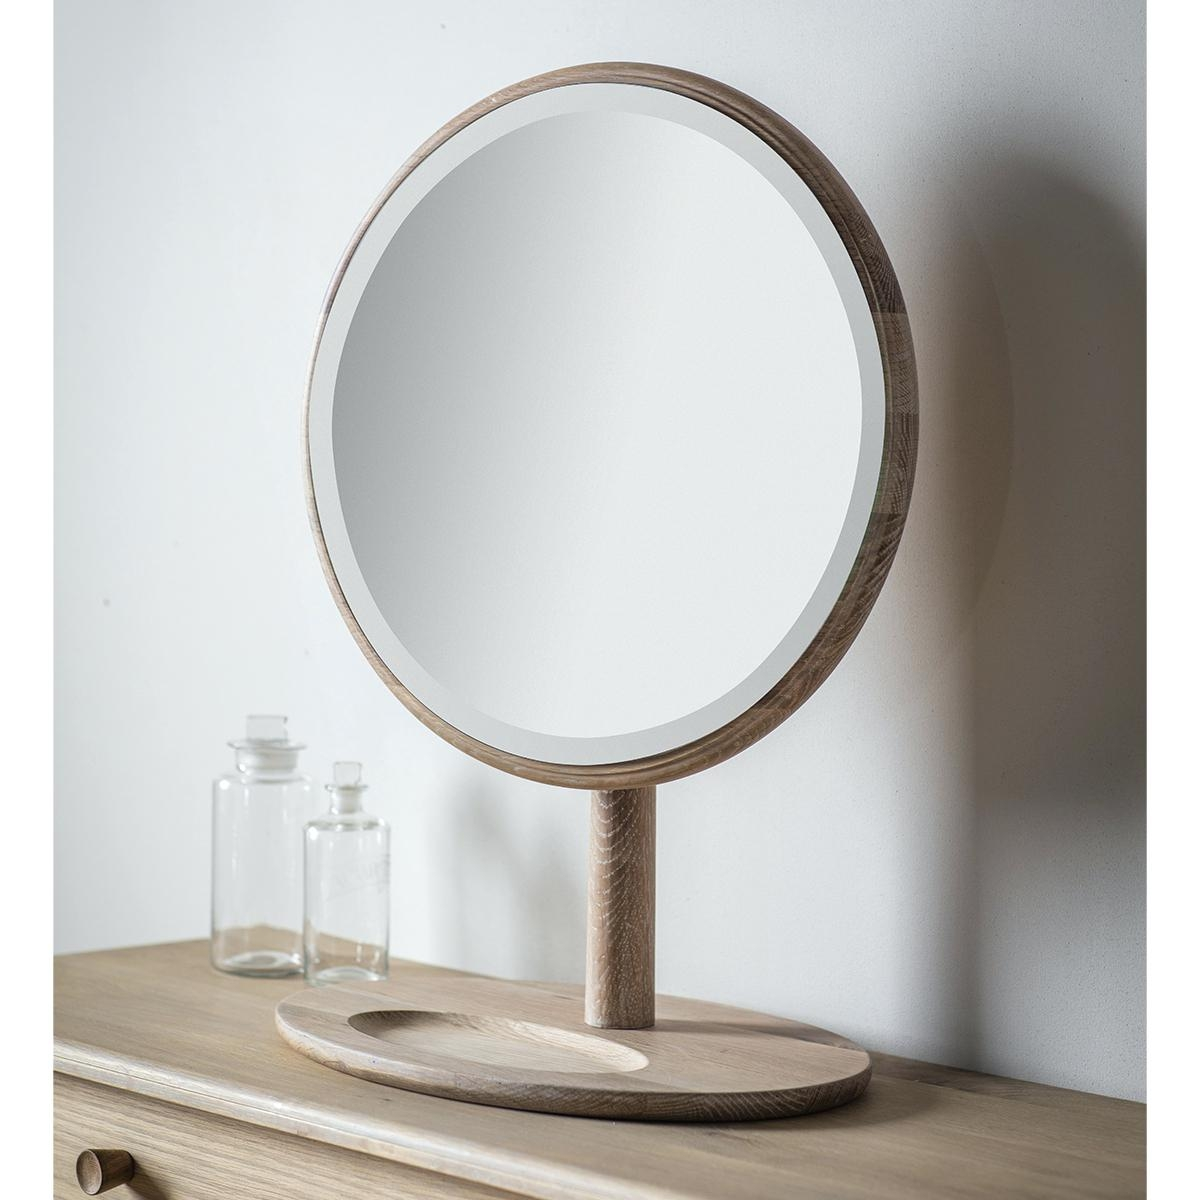 Oval Dressing Table Mirror Shopwiz In Free Standing Dressing Table Mirror (Image 12 of 15)